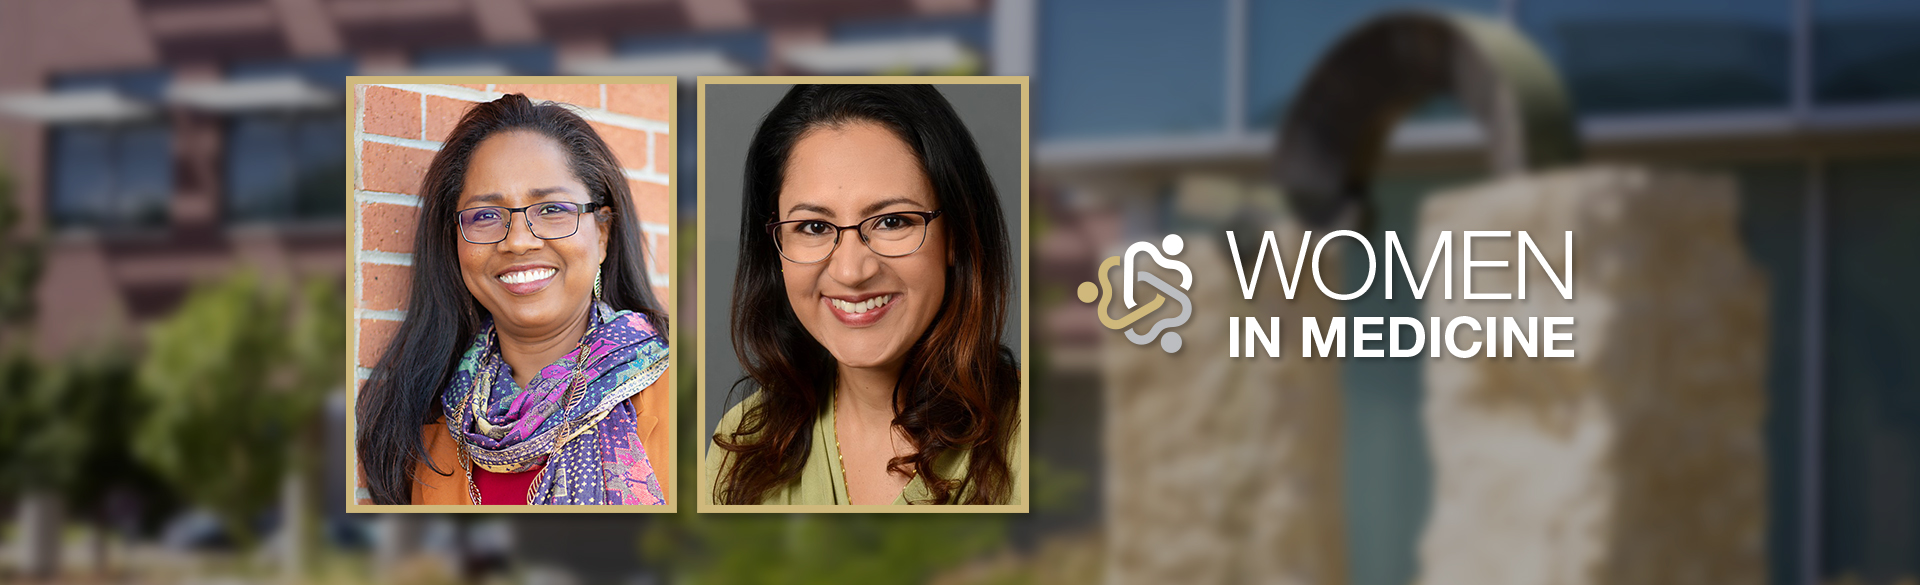 Celebrating Exceptional Women in Medicine During National Hispanic Heritage Month - CU Anschutz Today